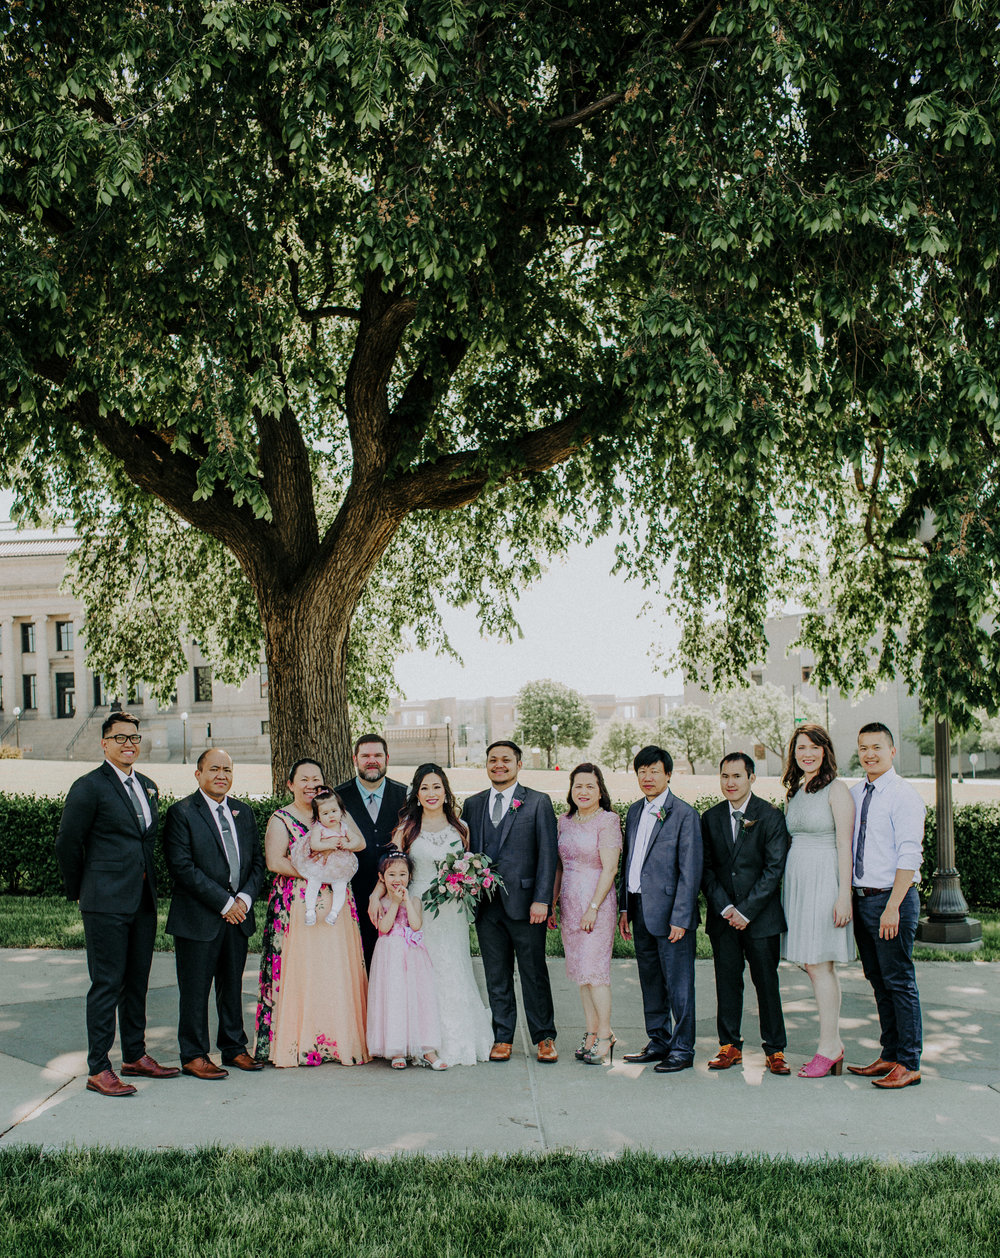 Flower+Xub, Their Wedding Day-126.jpg